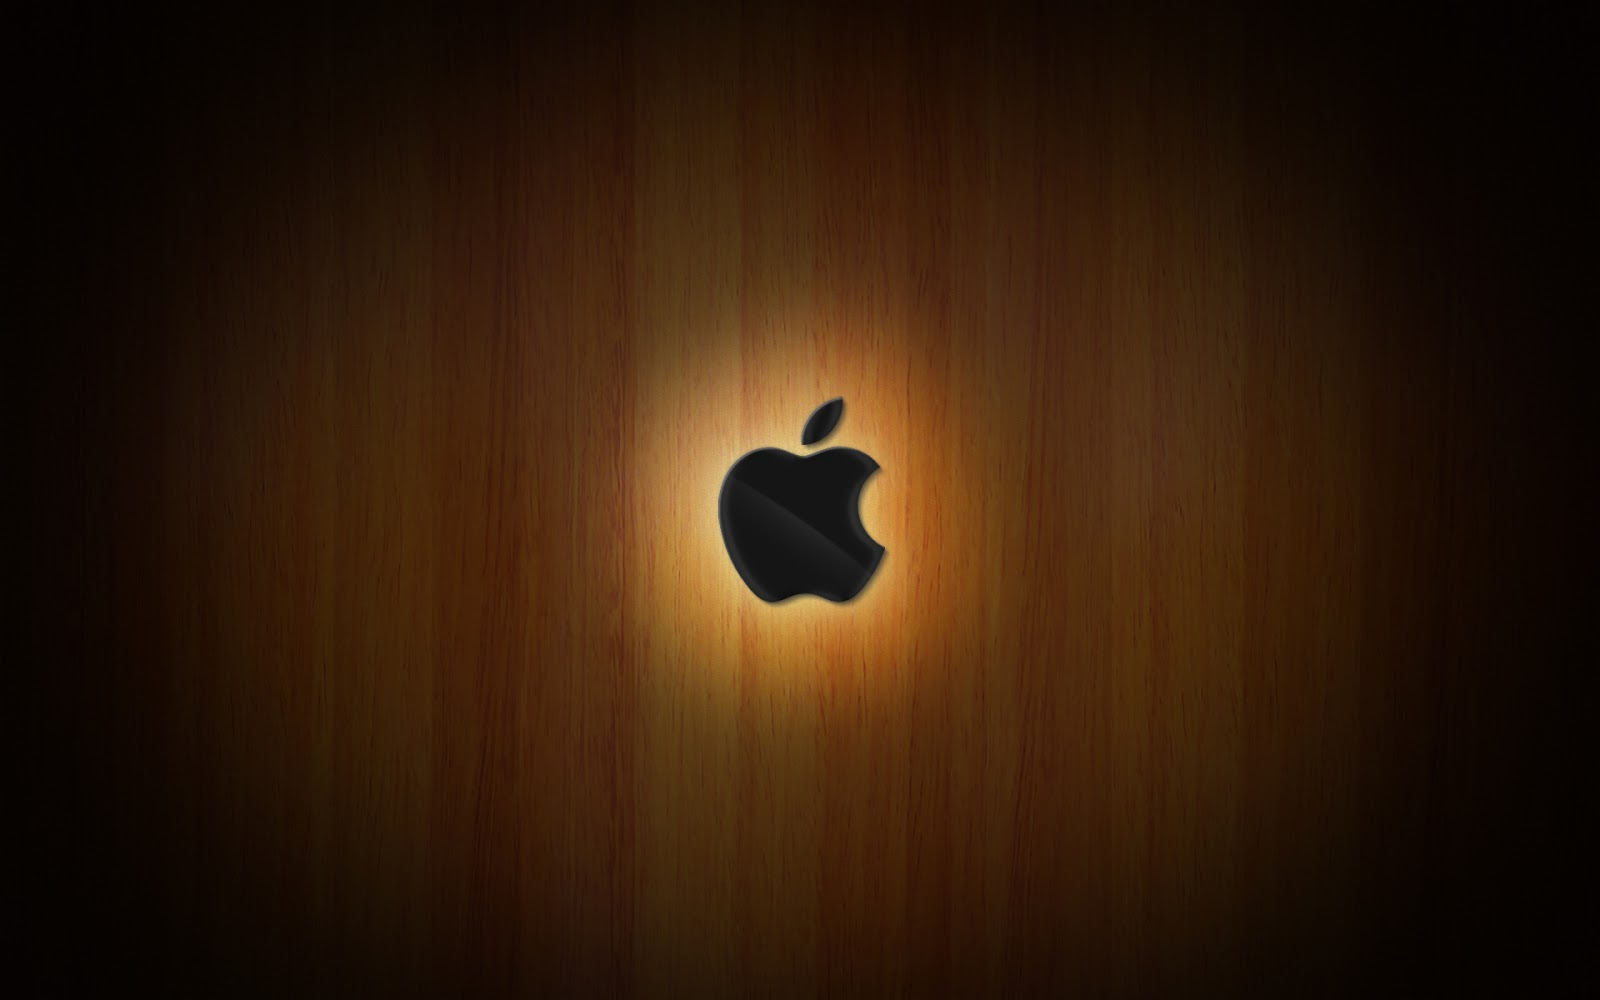 so get download cool apple wallpapers and make your desktop cool 1600x1000